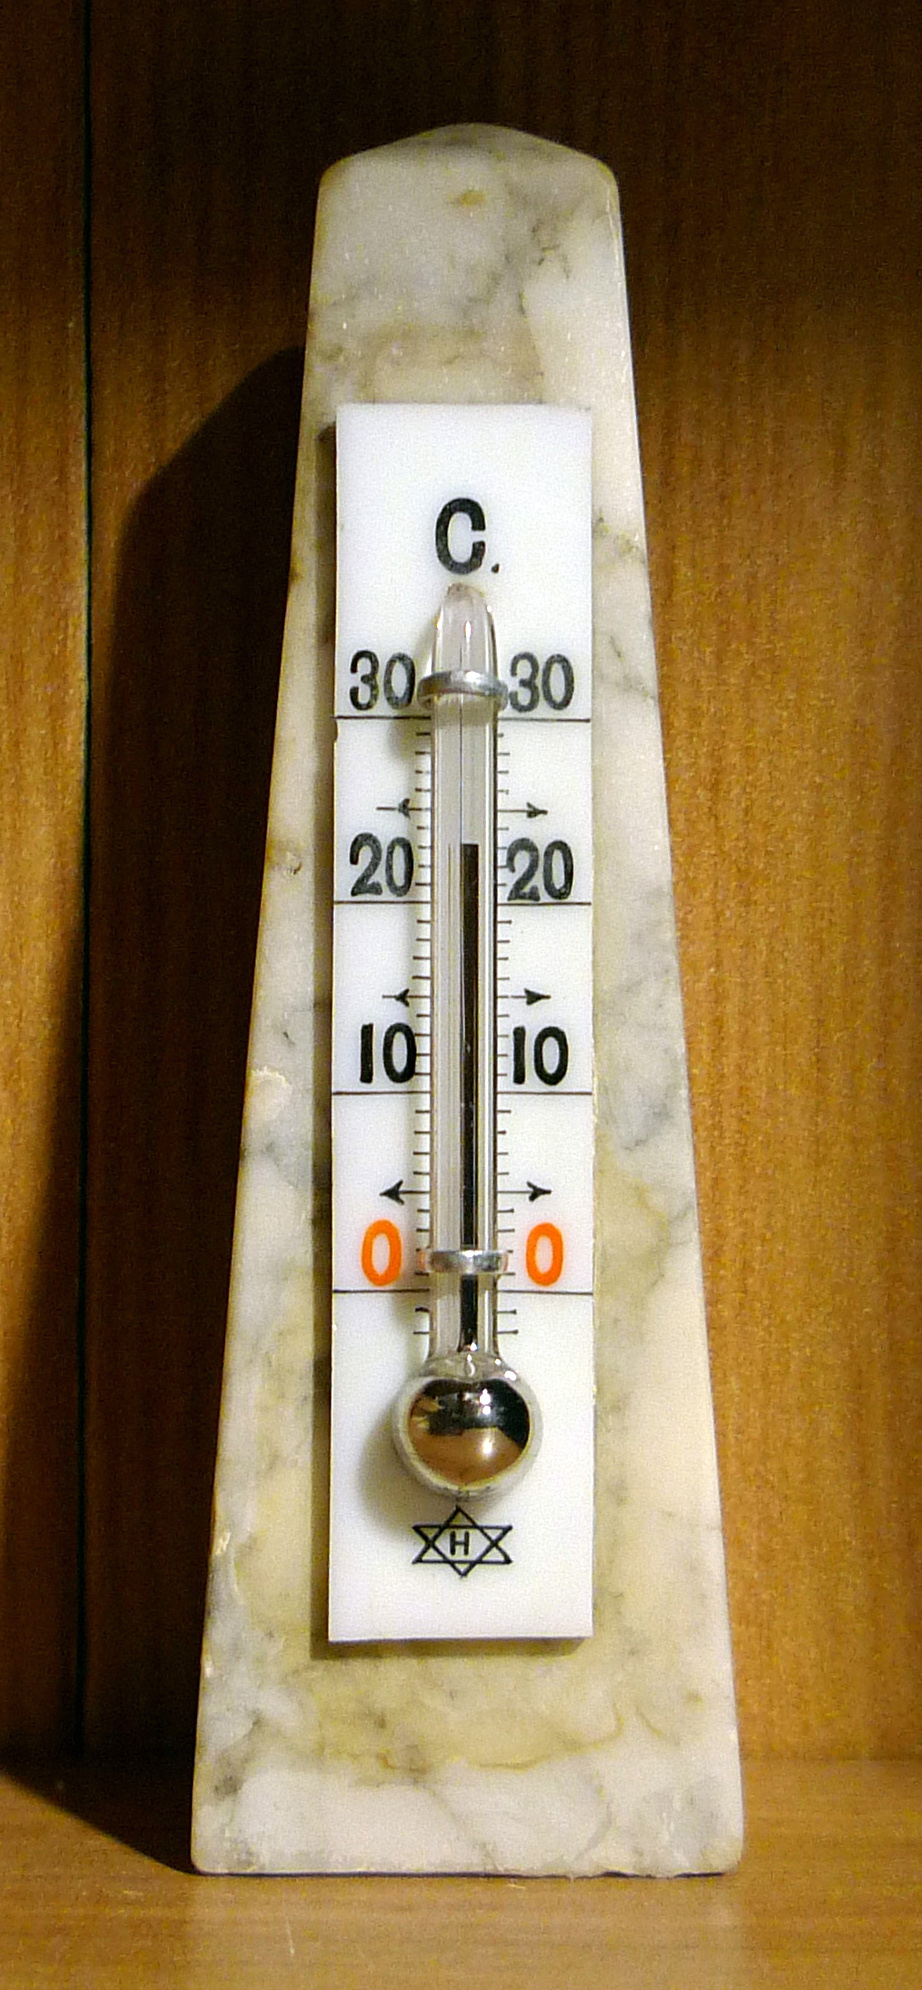 Room Temperature In Centigrade